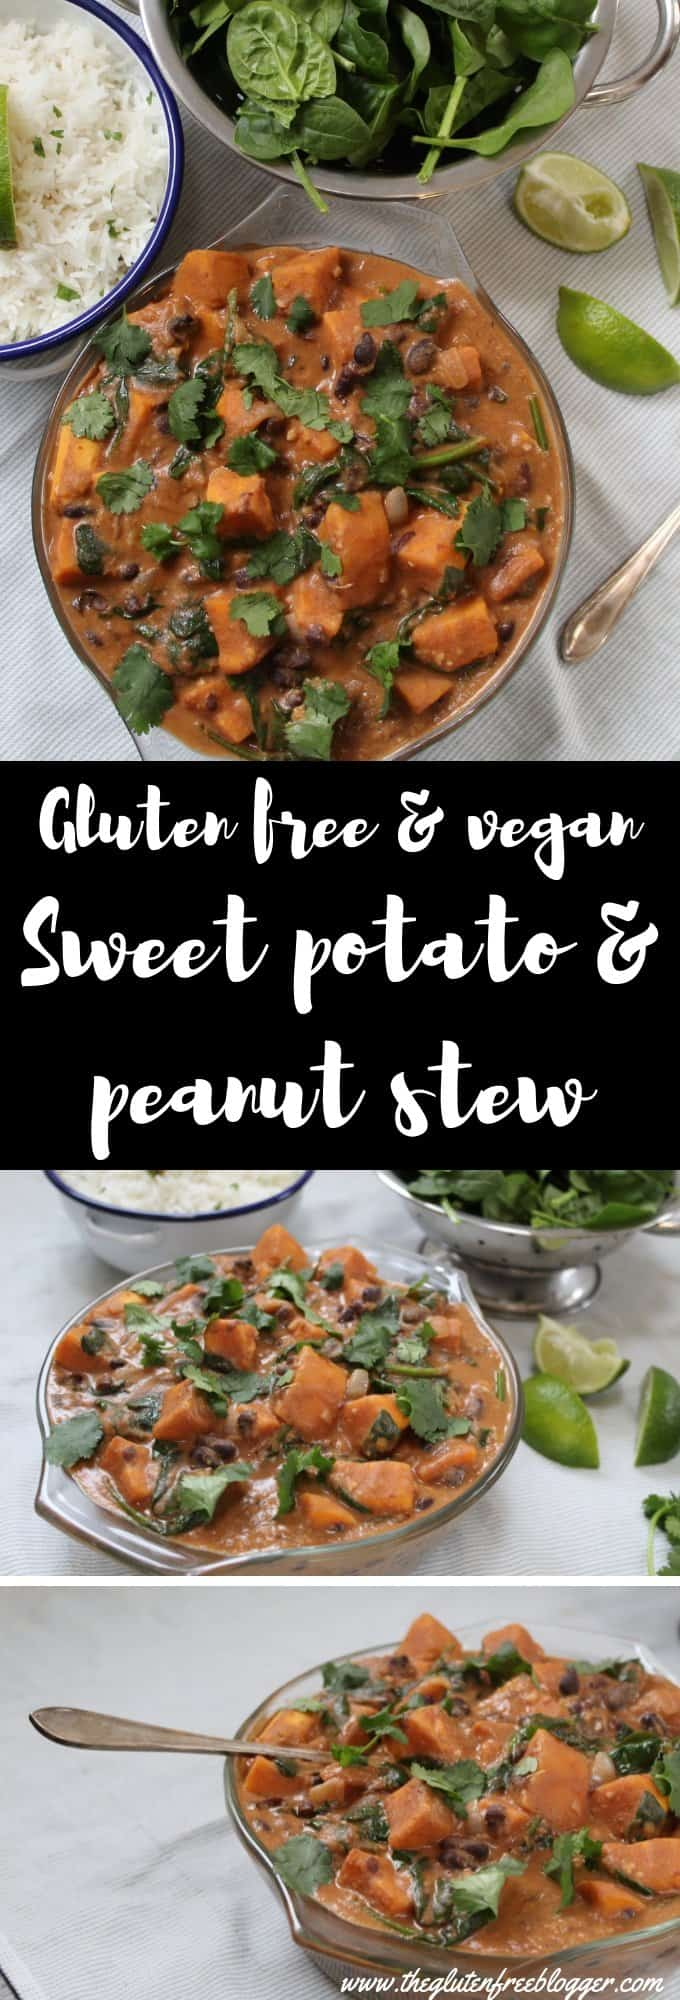 gluten free vegan recipe sweet potato black bean peanut dairy free vegetarian dinner inspiration easy recipe